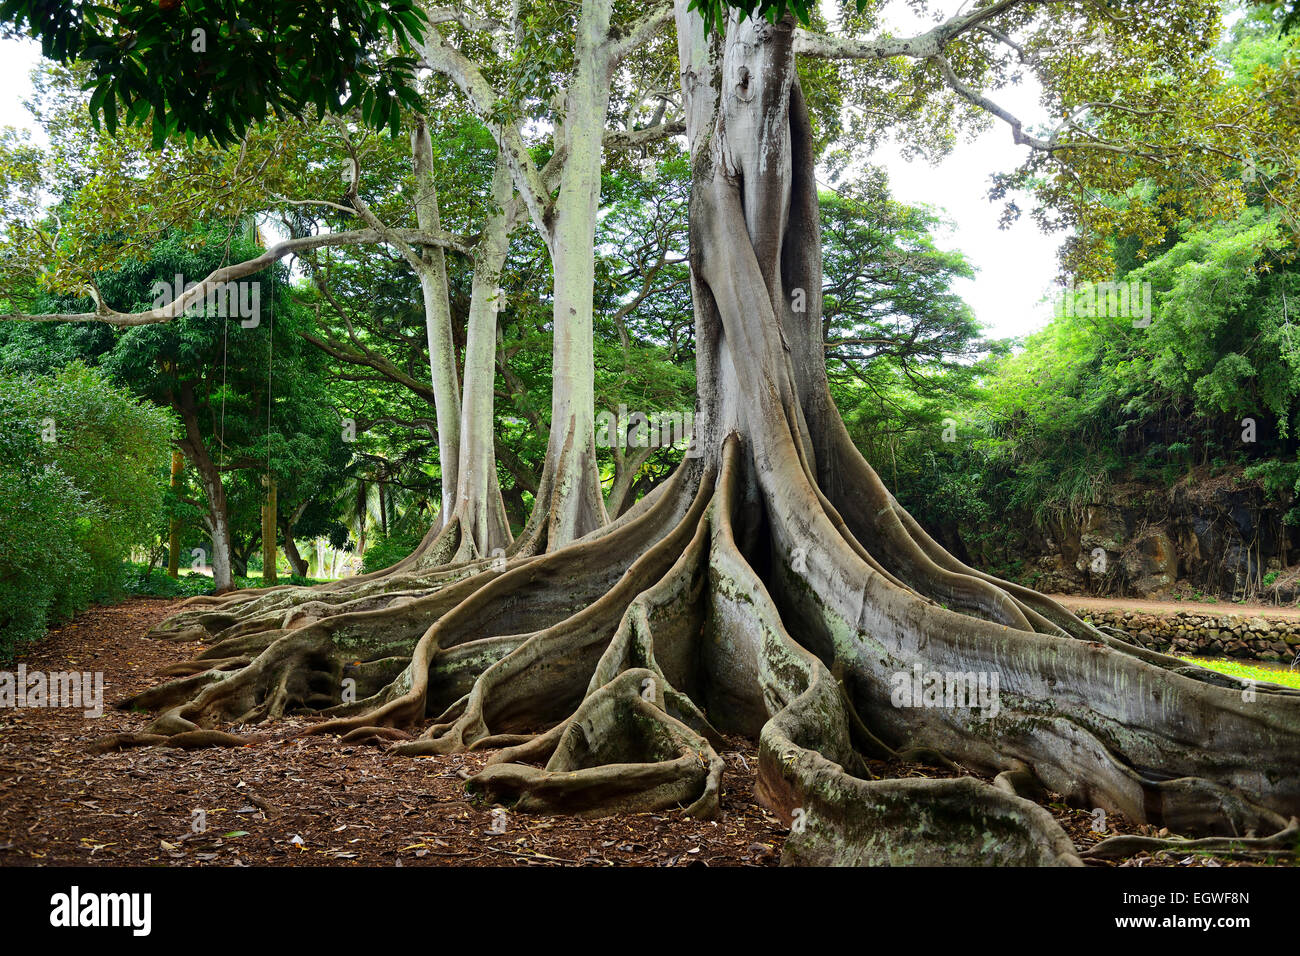 gnarled roots of ficus trees in allerton national tropical botanical garden within lawau0027i valley - Ficus Trees